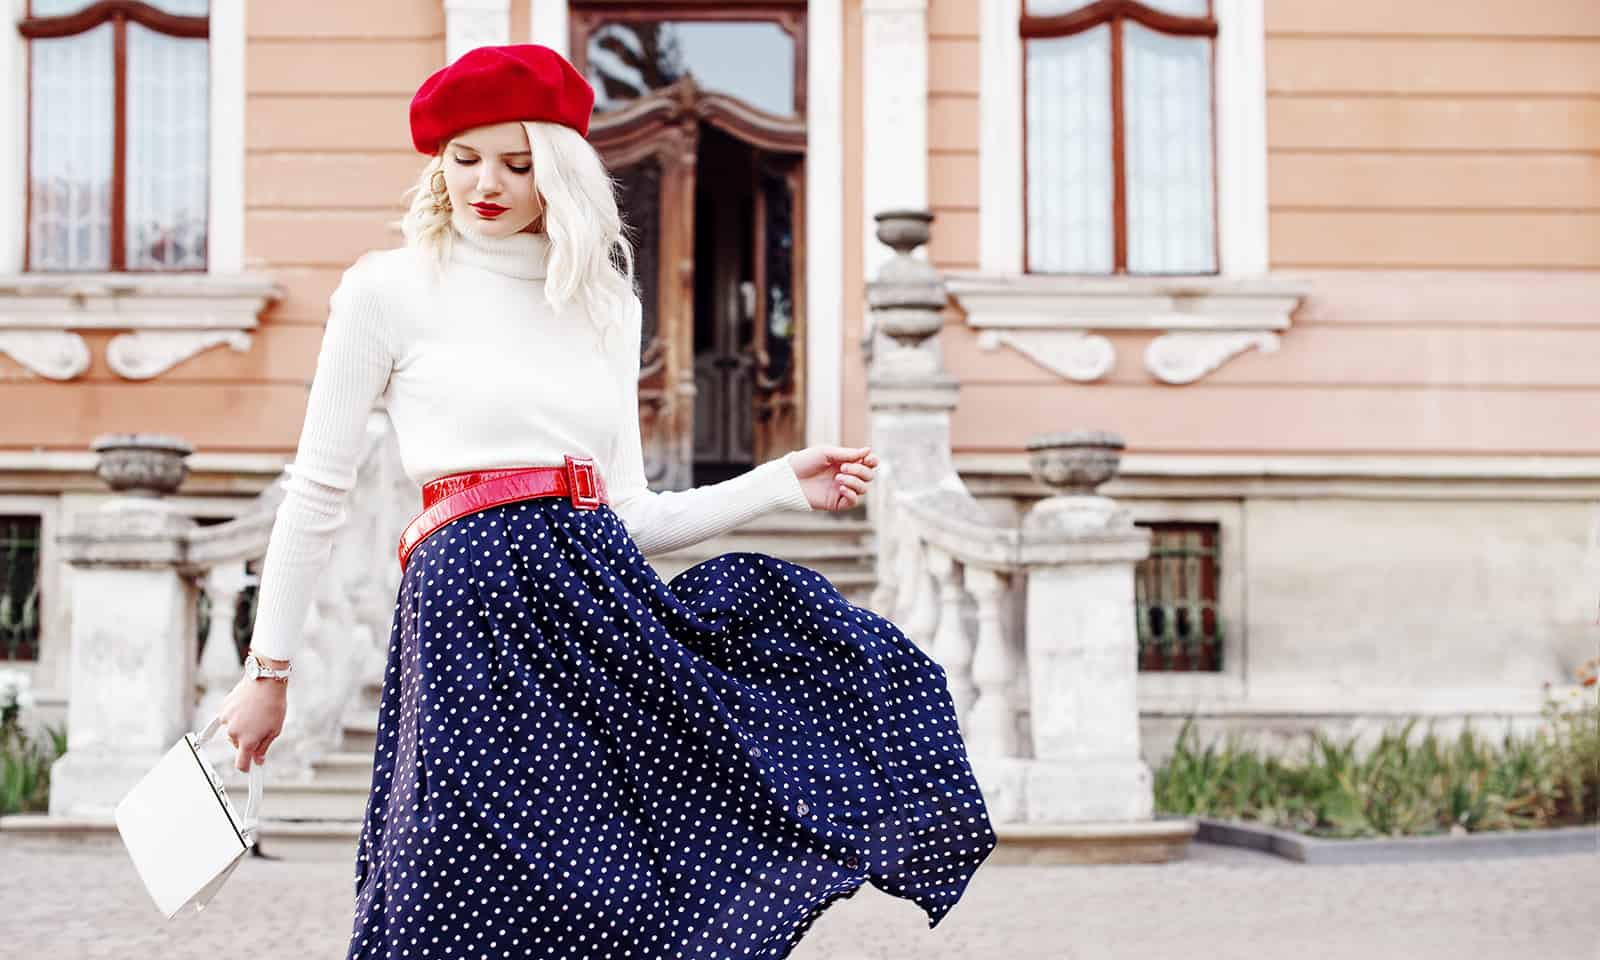 french-womens-makeup-commandments-main-image-beautiful-girl-in-a-beret-and-fashionable-outfit